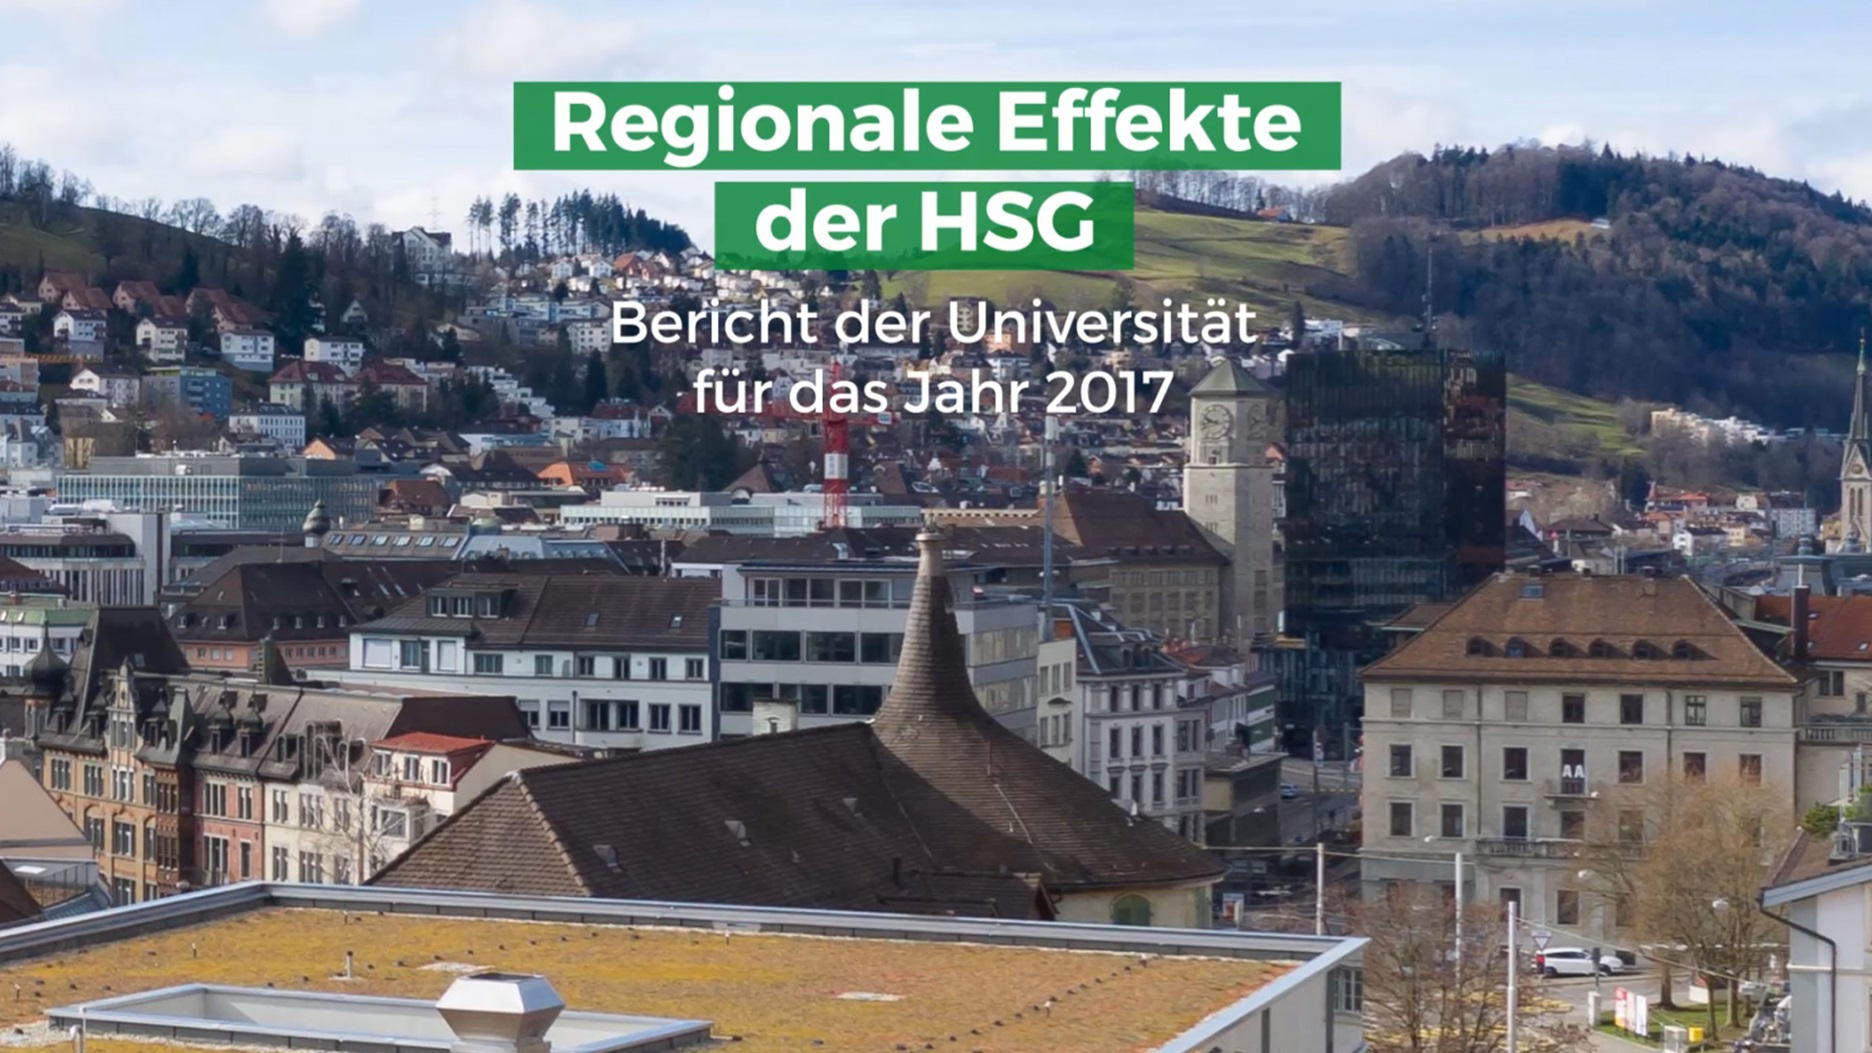 Regional effects of the HSG